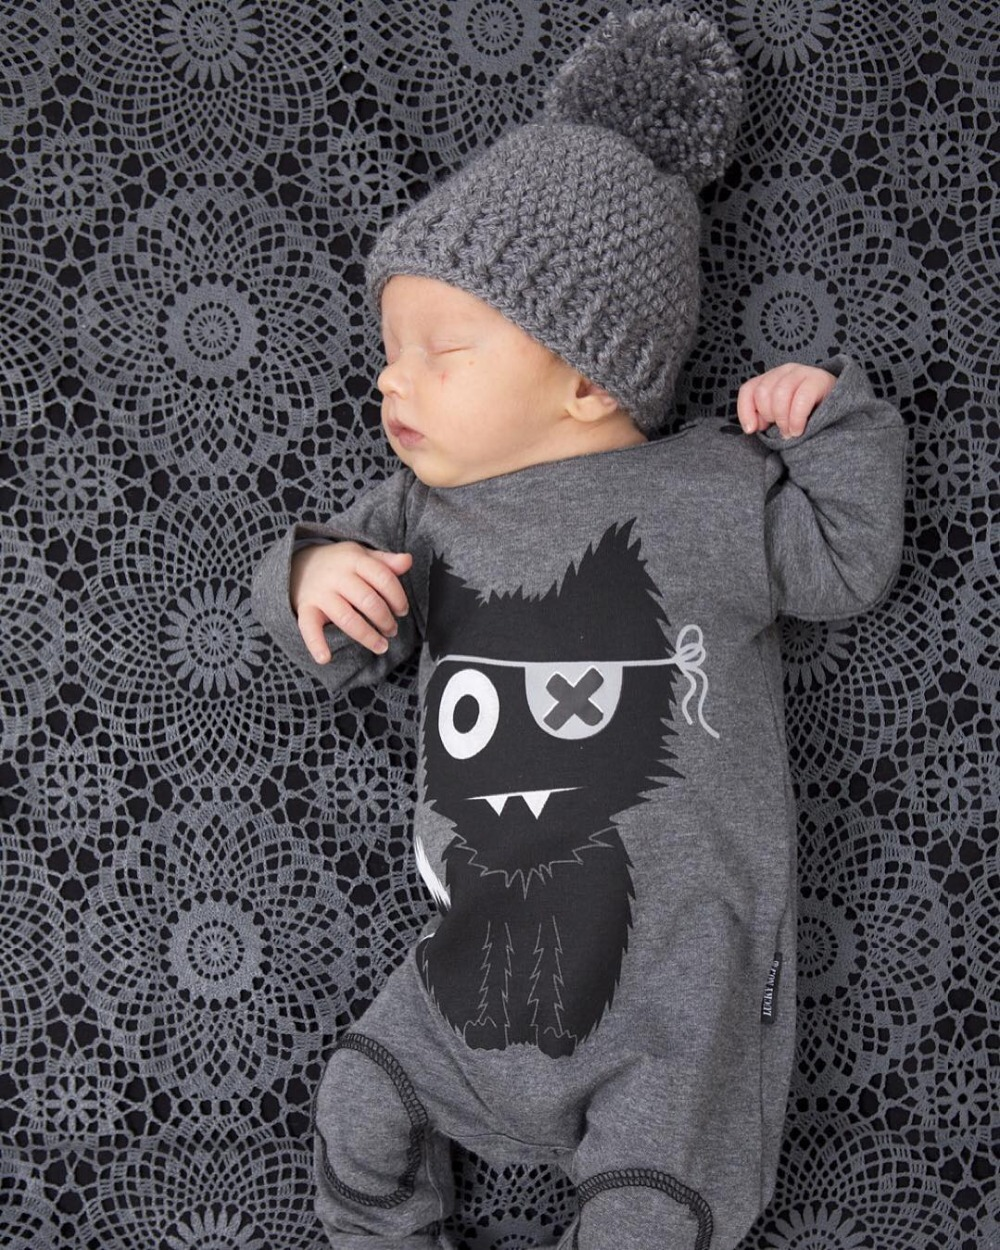 2016 fashion baby boy clothes long sleeve baby rompers newborn cotton baby girl clothing jumpsuit infant clothing roupas de bebe newborn baby rompers high quality natural cotton infant boy girl thicken outfit clothing ropa bebe recien nacido baby clothes